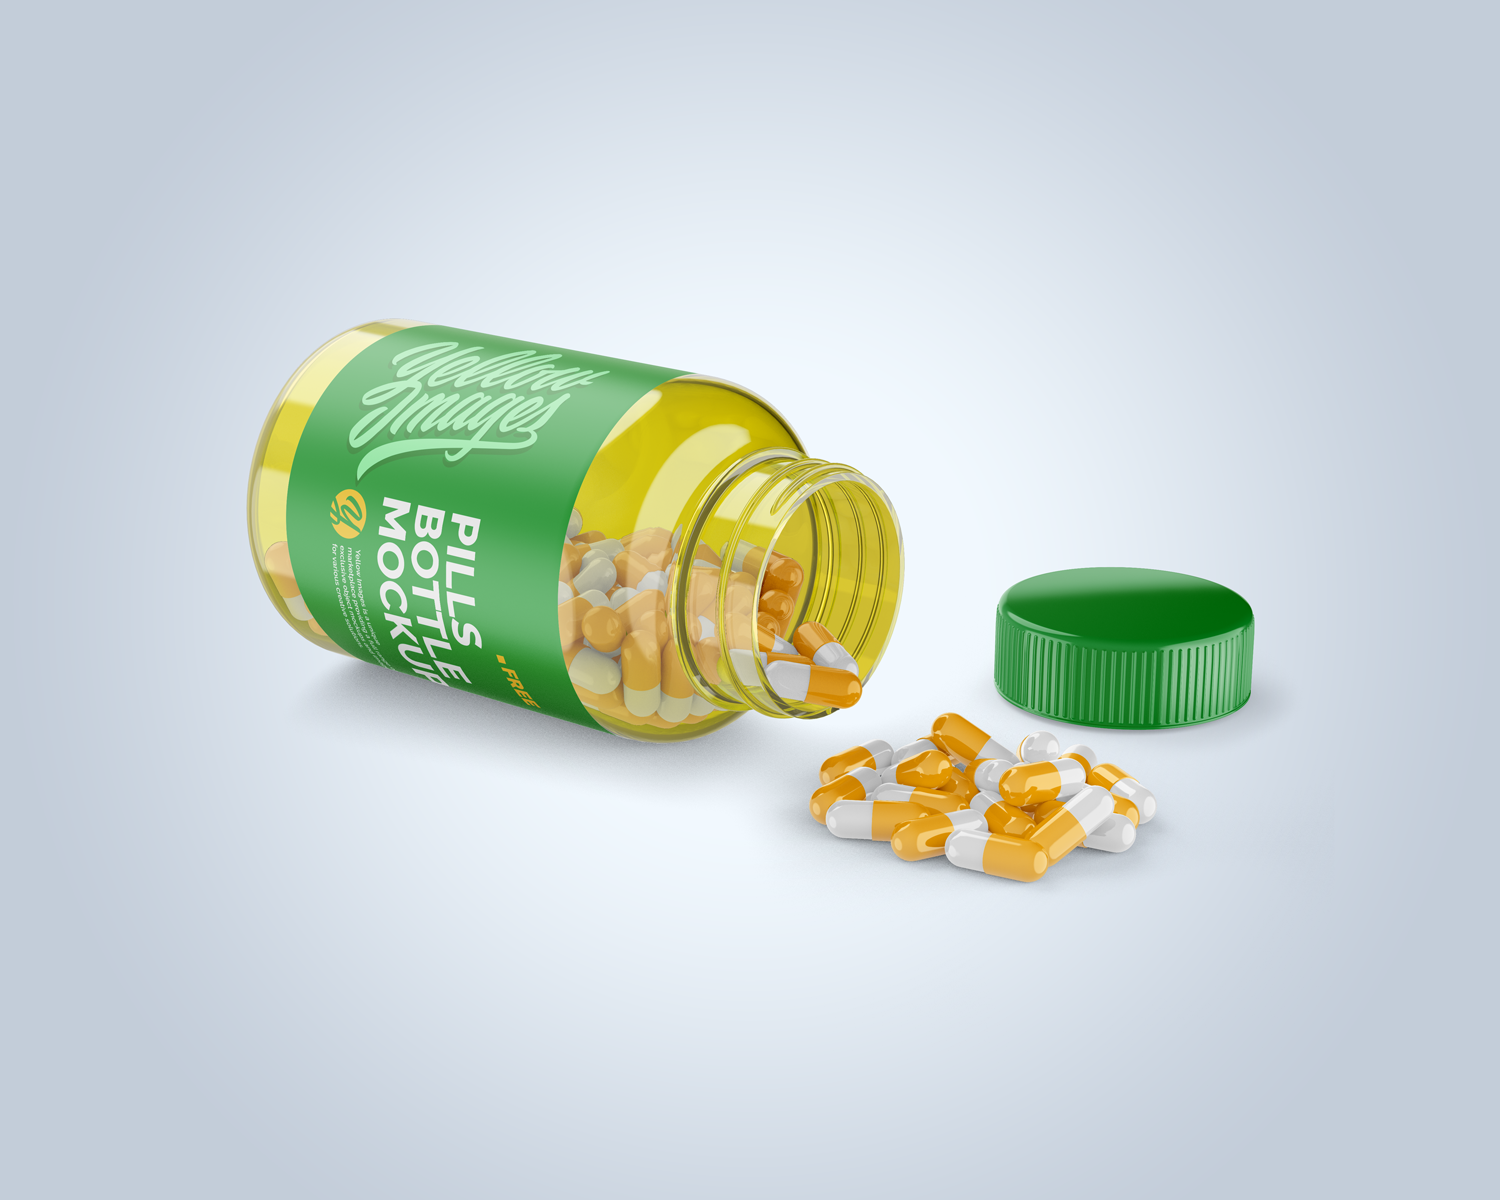 Transparent Bottle with Pills Mockup